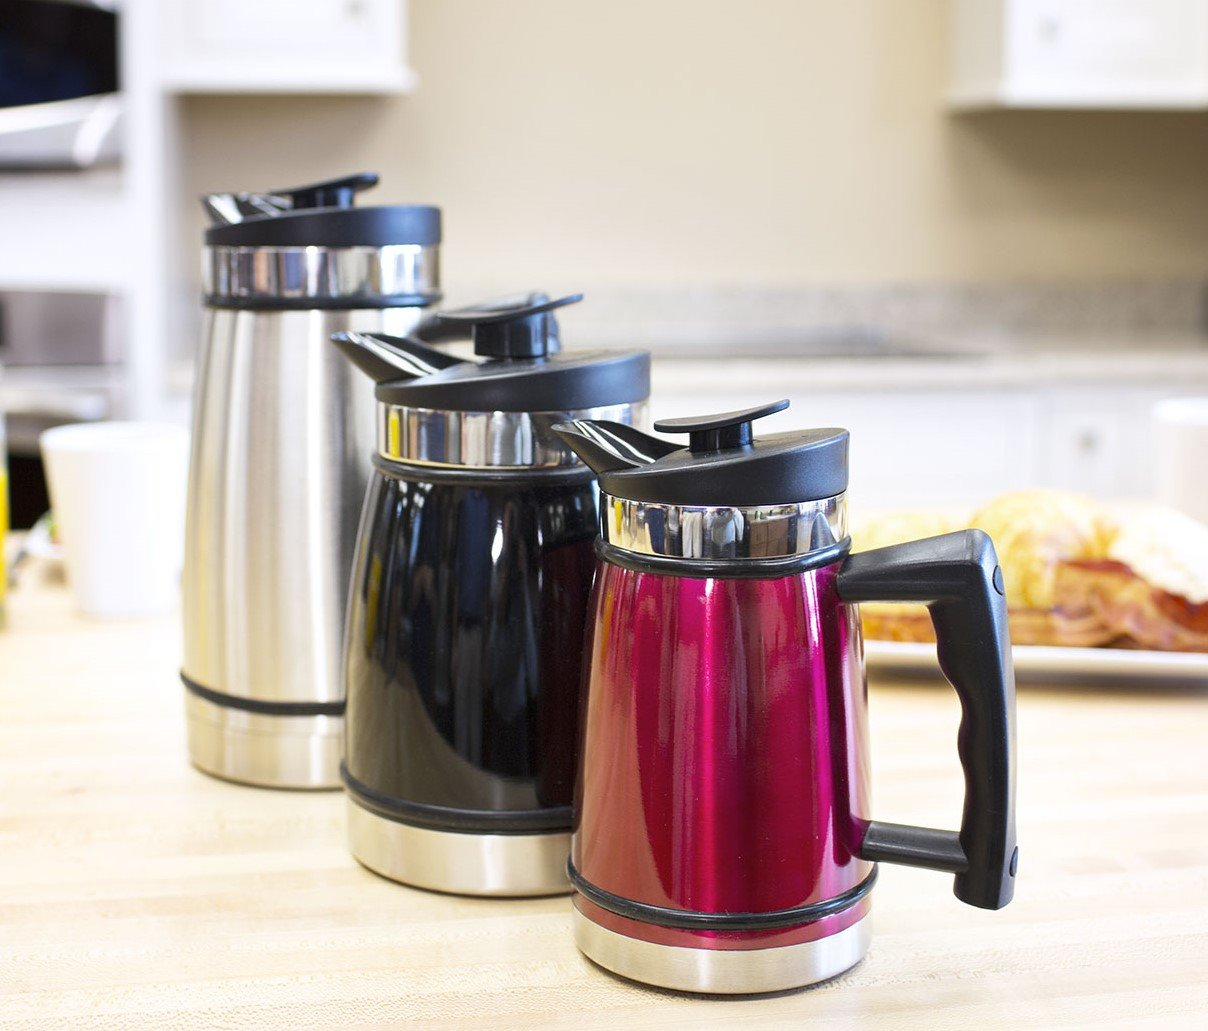 French Press Tabletop Coffee and Tea Maker with Bru Stop Technology - 48 oz - Stainless Steel - Obsidian Black by Planetary Design